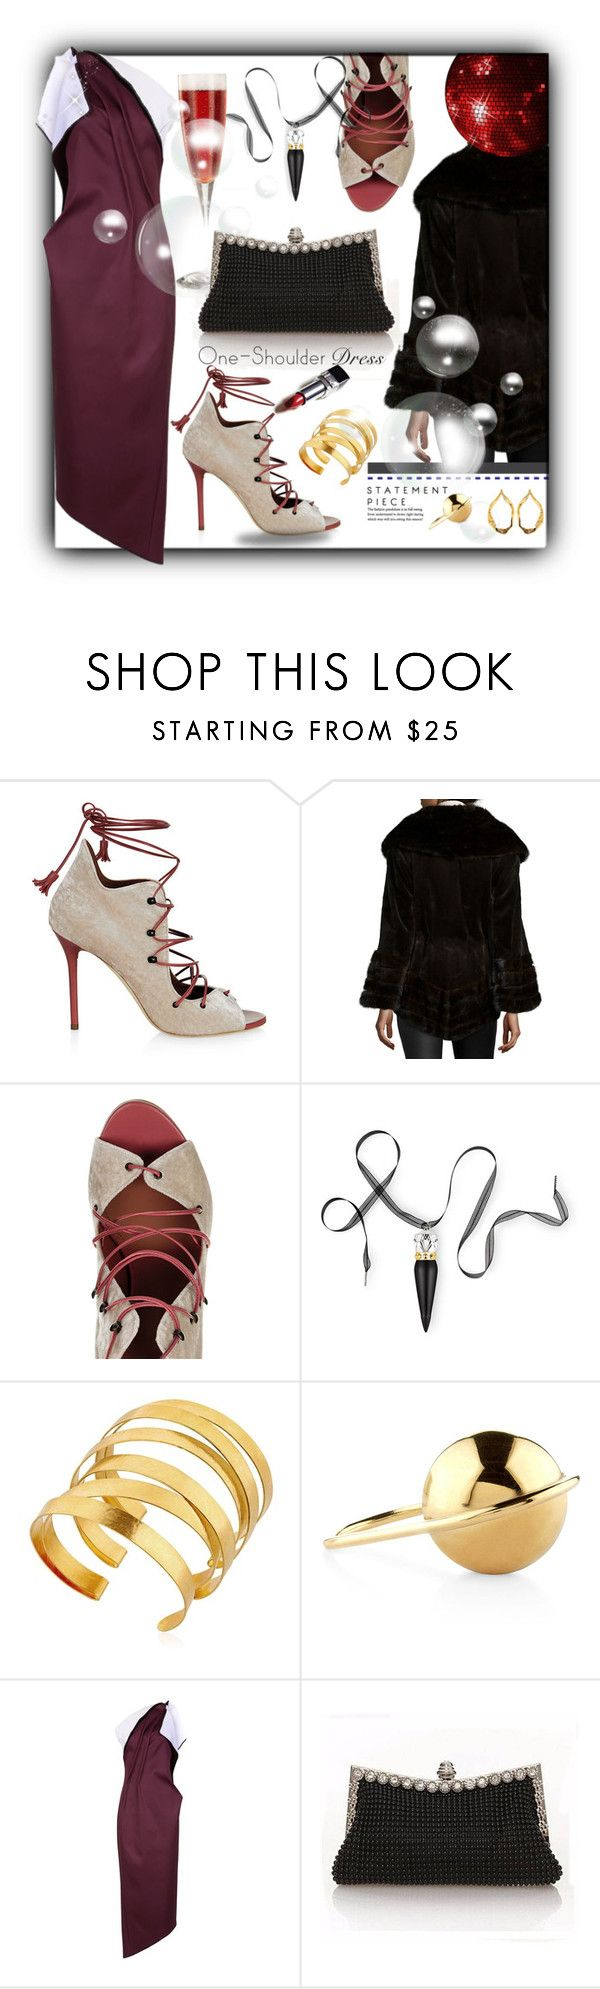 """""""Dark Glamour"""" by sjkfavorites ❤ liked on Polyvore featuring Malone Souliers, Christian Louboutin, Hervé Van Der Straeten, LeiVanKash, Maticevski and Tom Ford"""